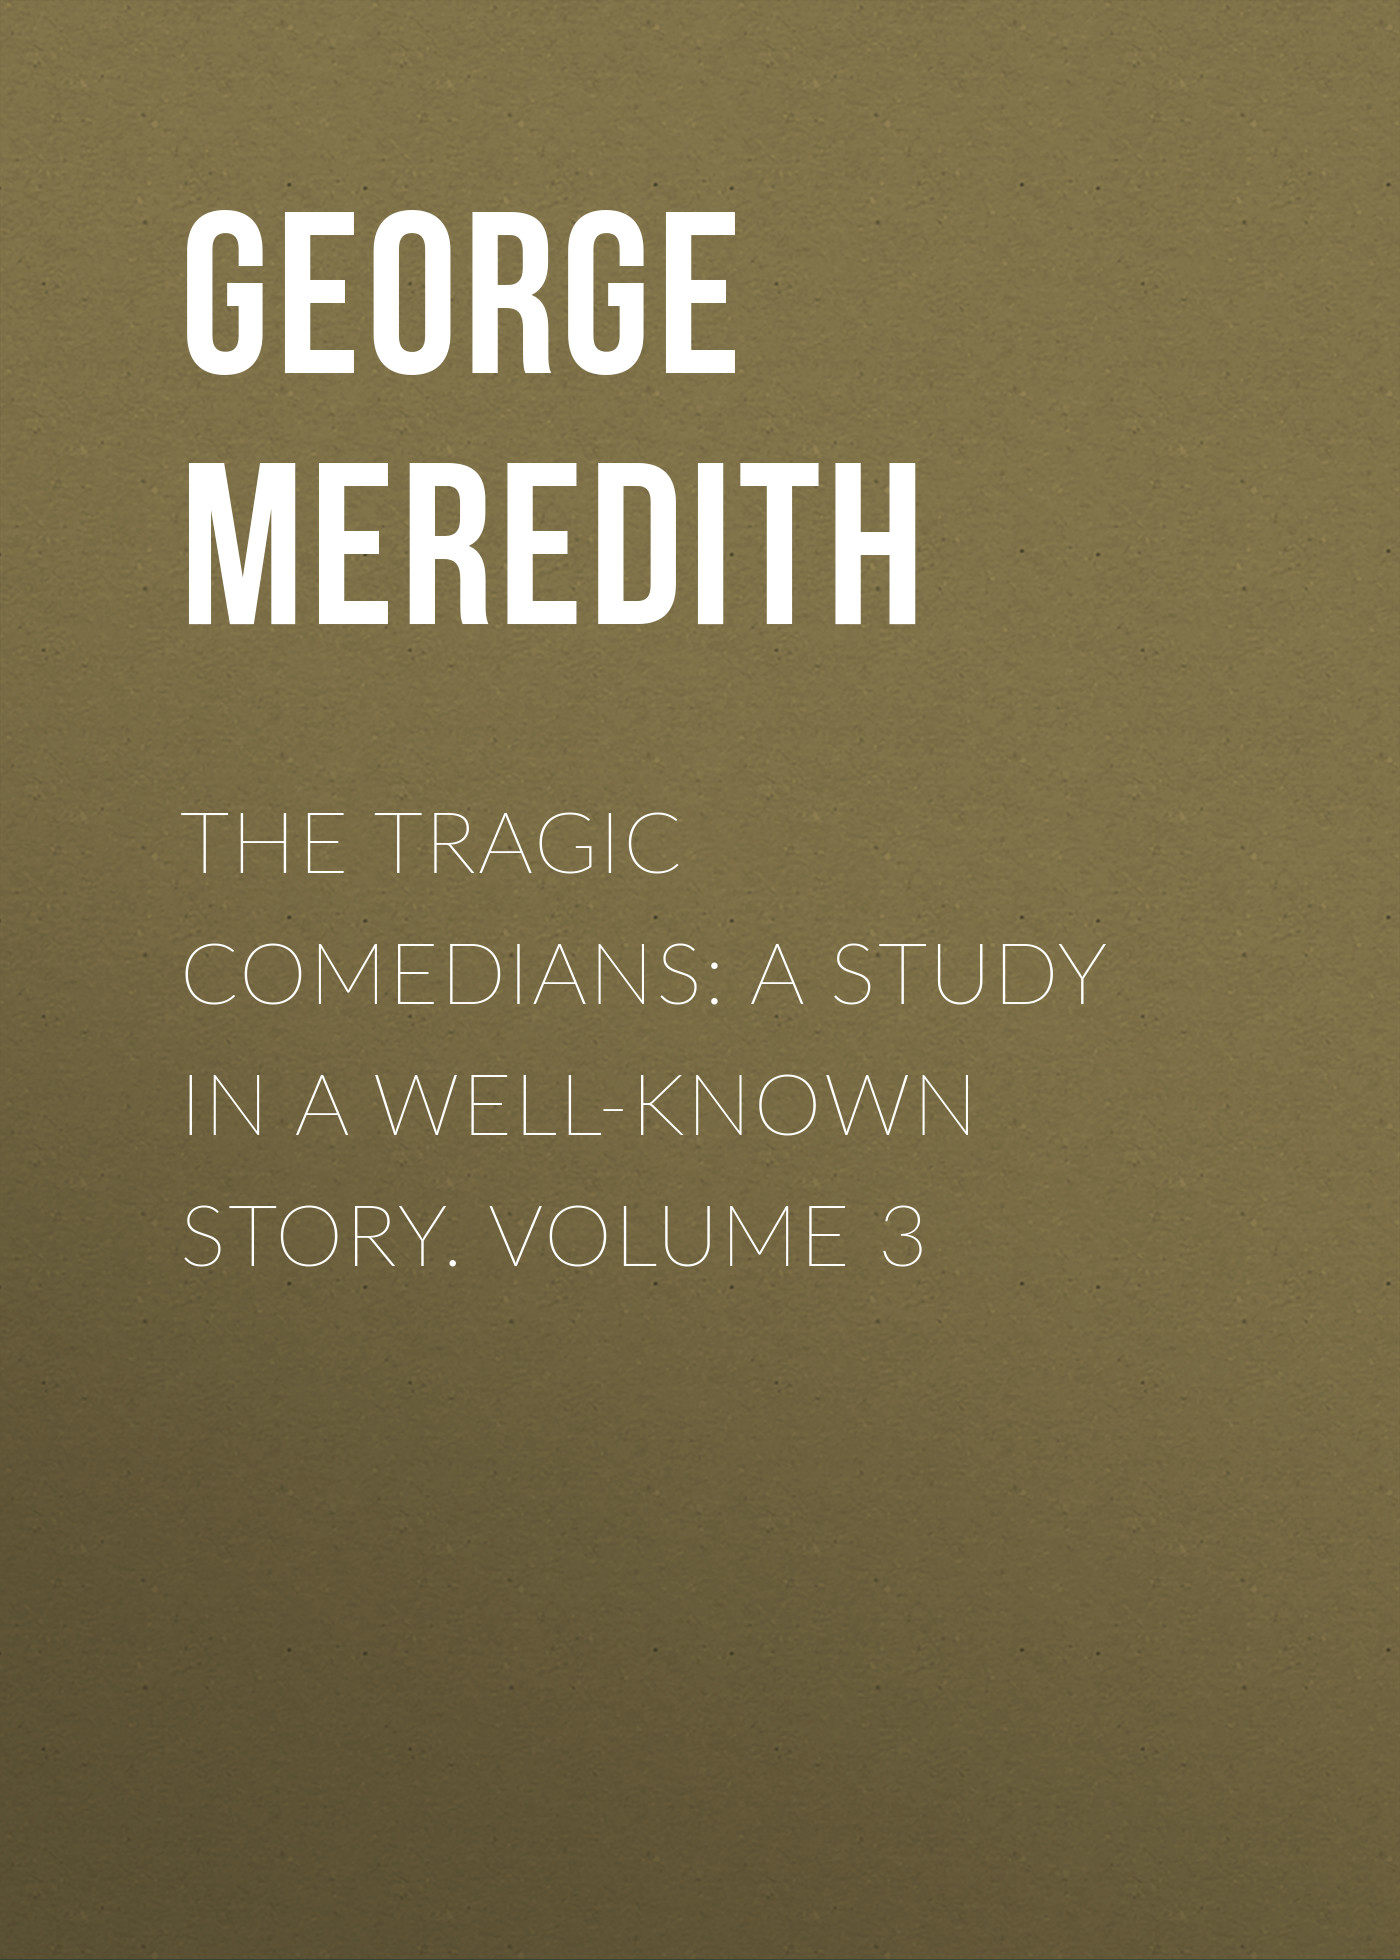 George Meredith The Tragic Comedians: A Study in a Well-known Story. Volume 3 george meredith the egoist a comedy in narrative